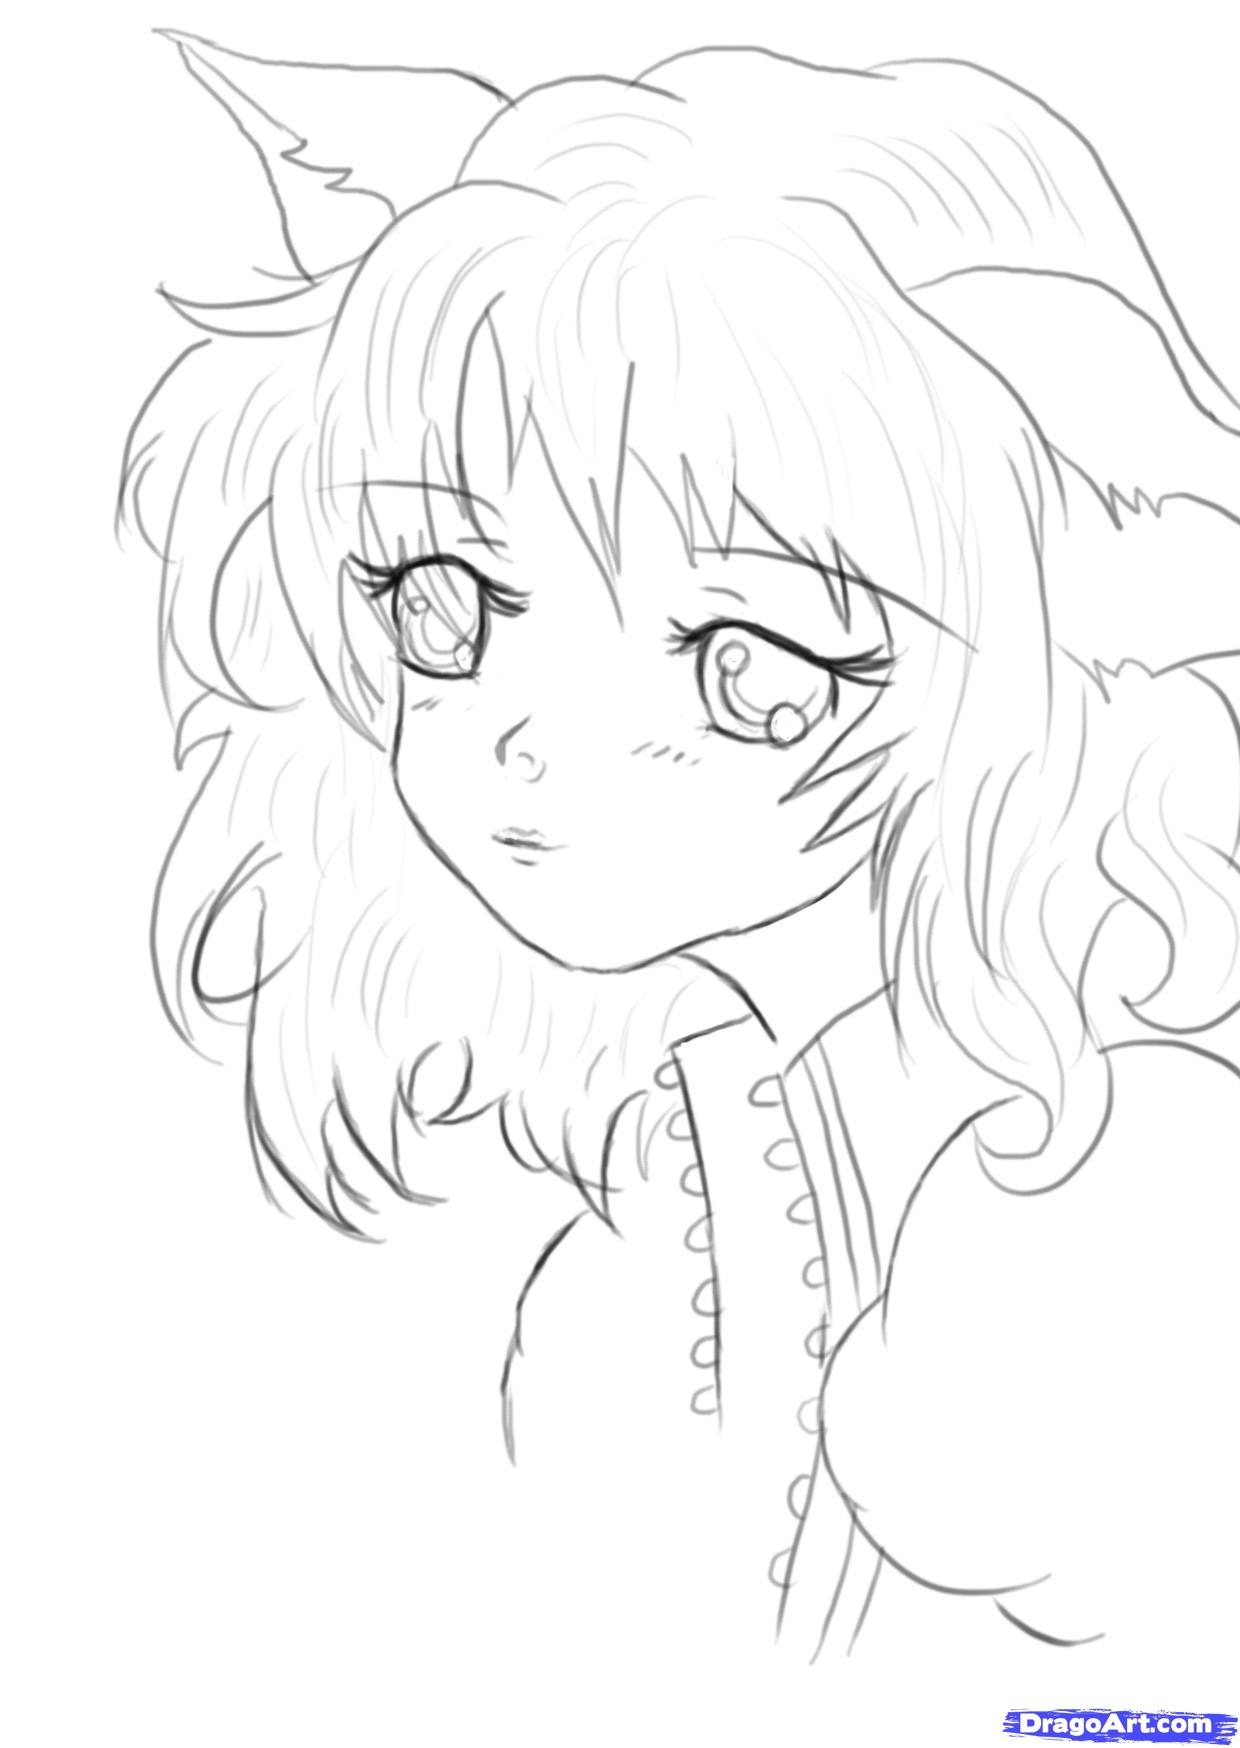 1240x1748 Cute Anime Draw Draw Girl Face And Hair In Cute Style How